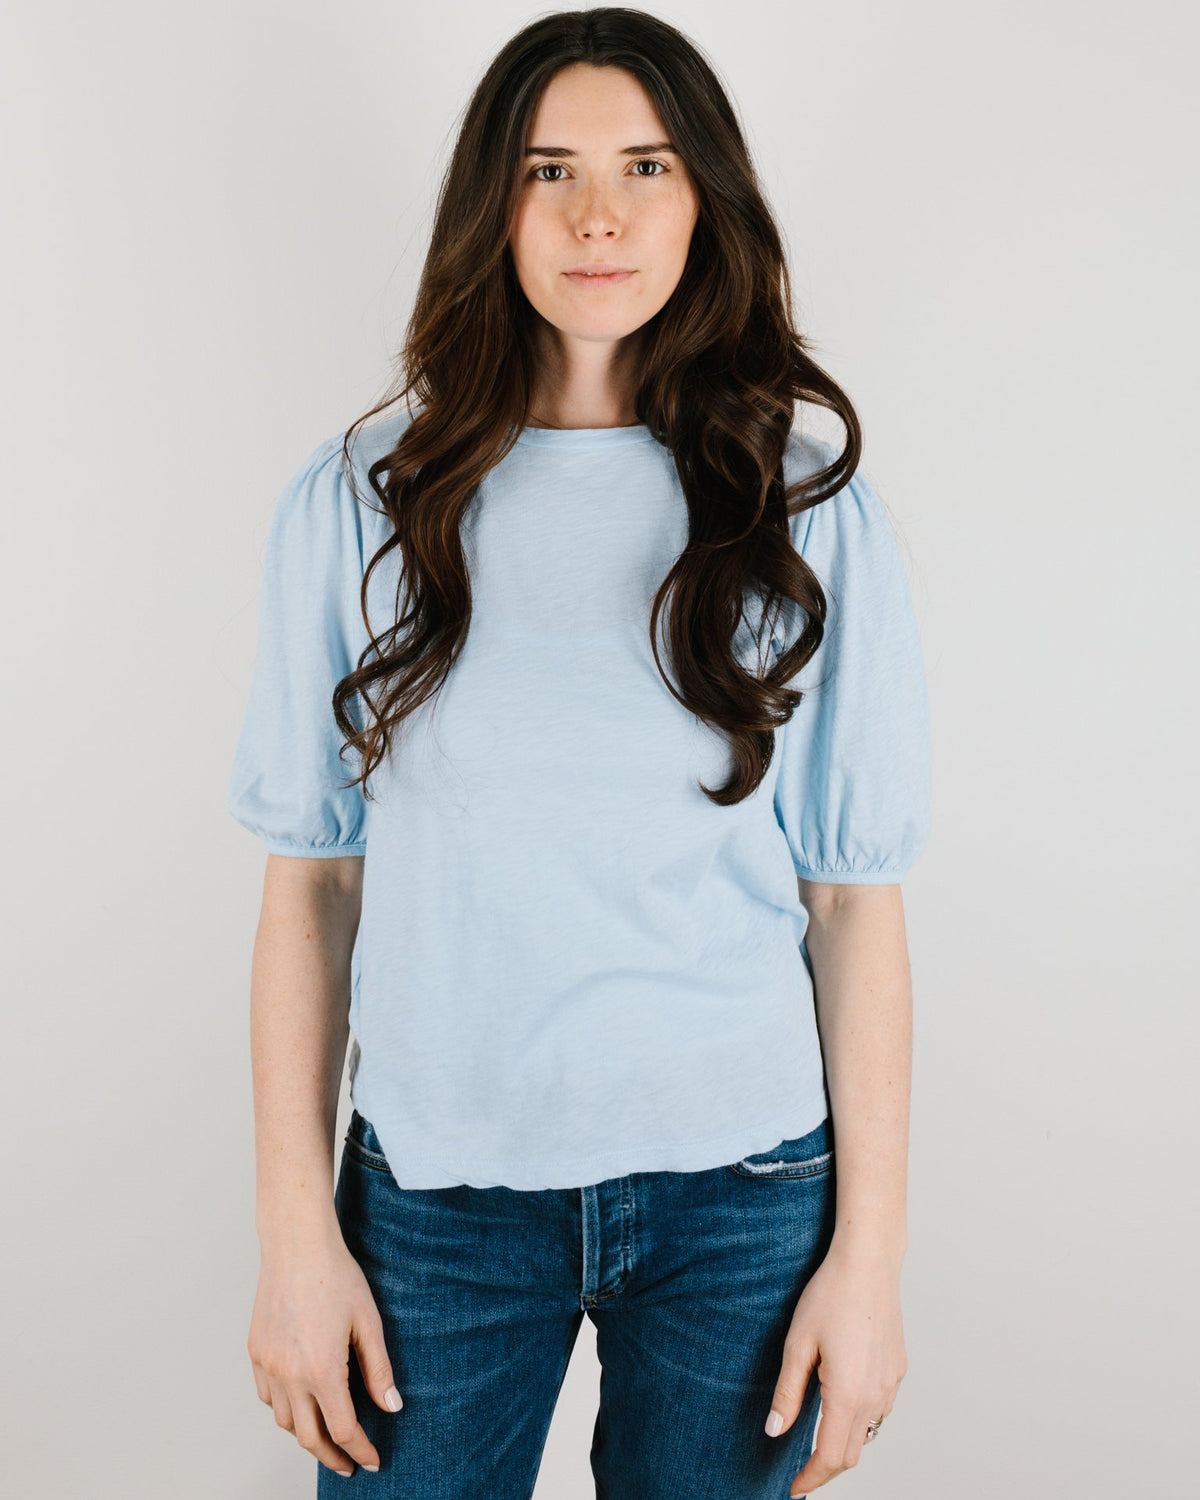 Velvet by Graham & Spencer Clothing Joella Puff Sleeve Top in Ice